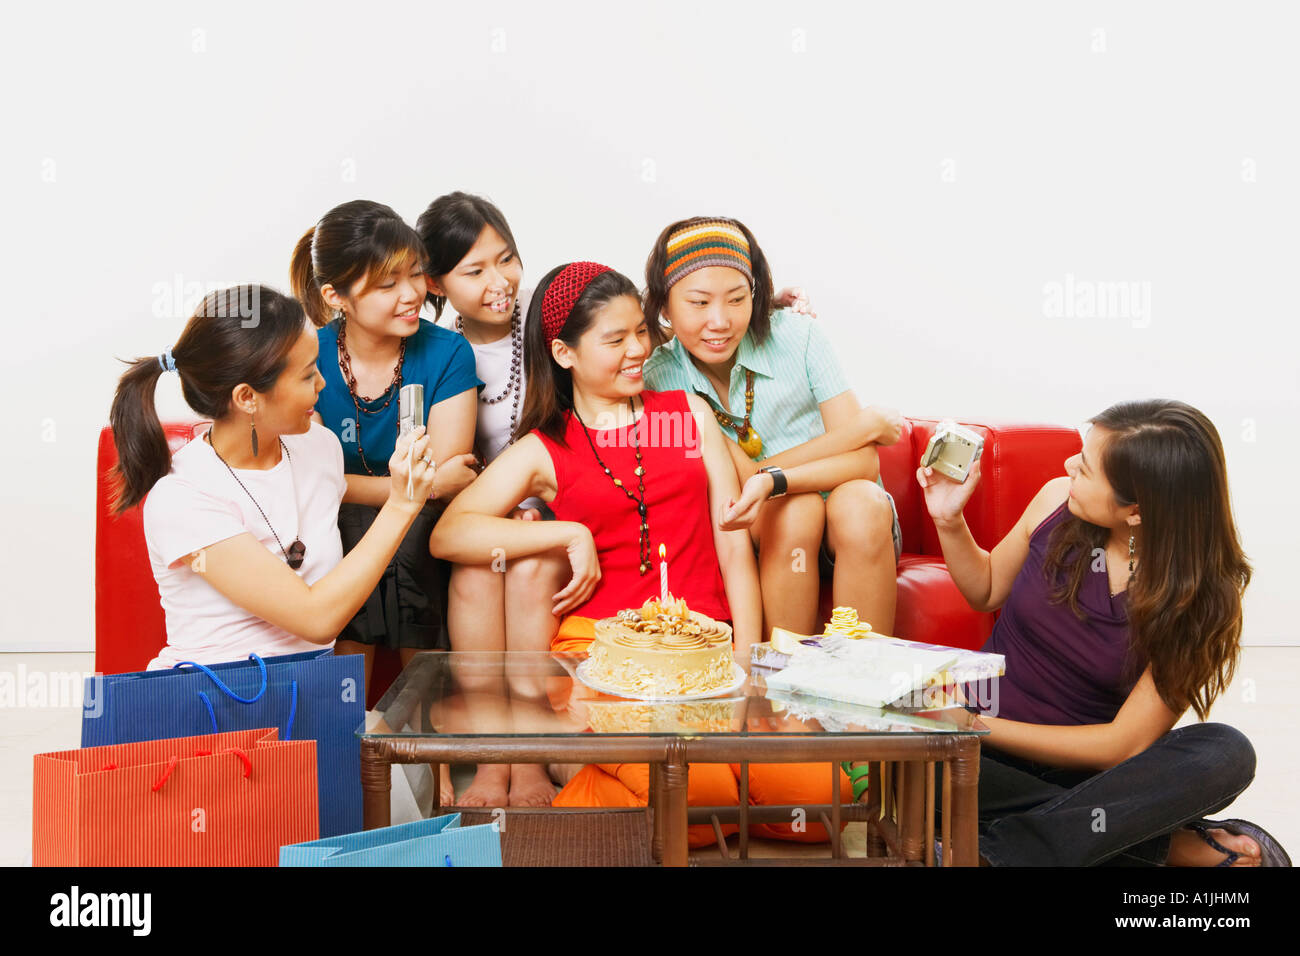 Young woman celebrating her birthday with her friends - Stock Image